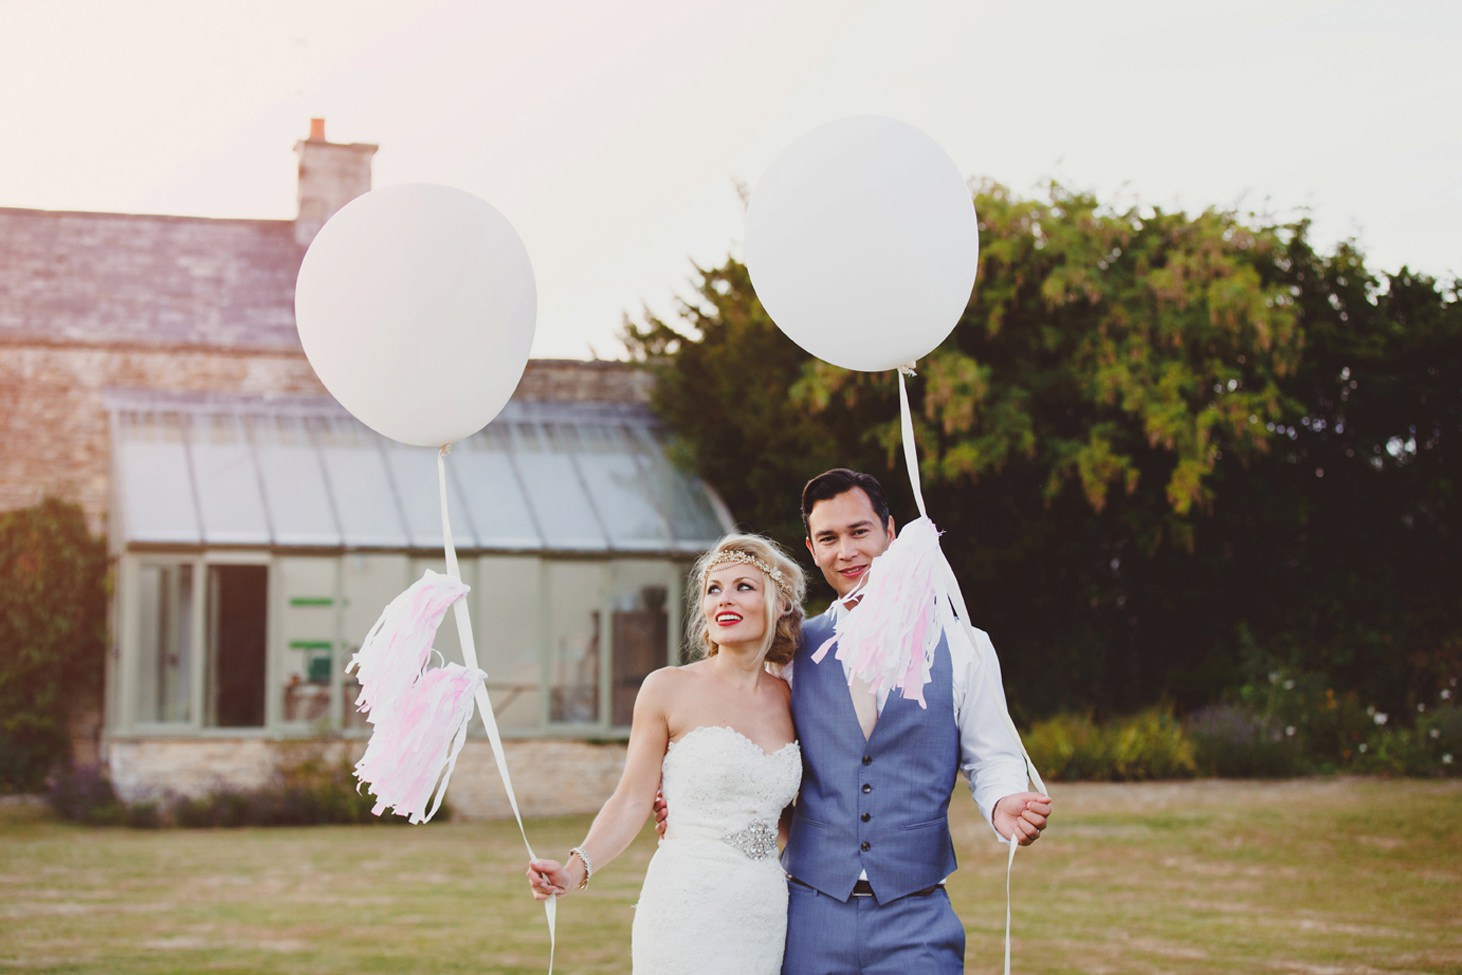 The Rectory Hotel Crudwell balloon portrait